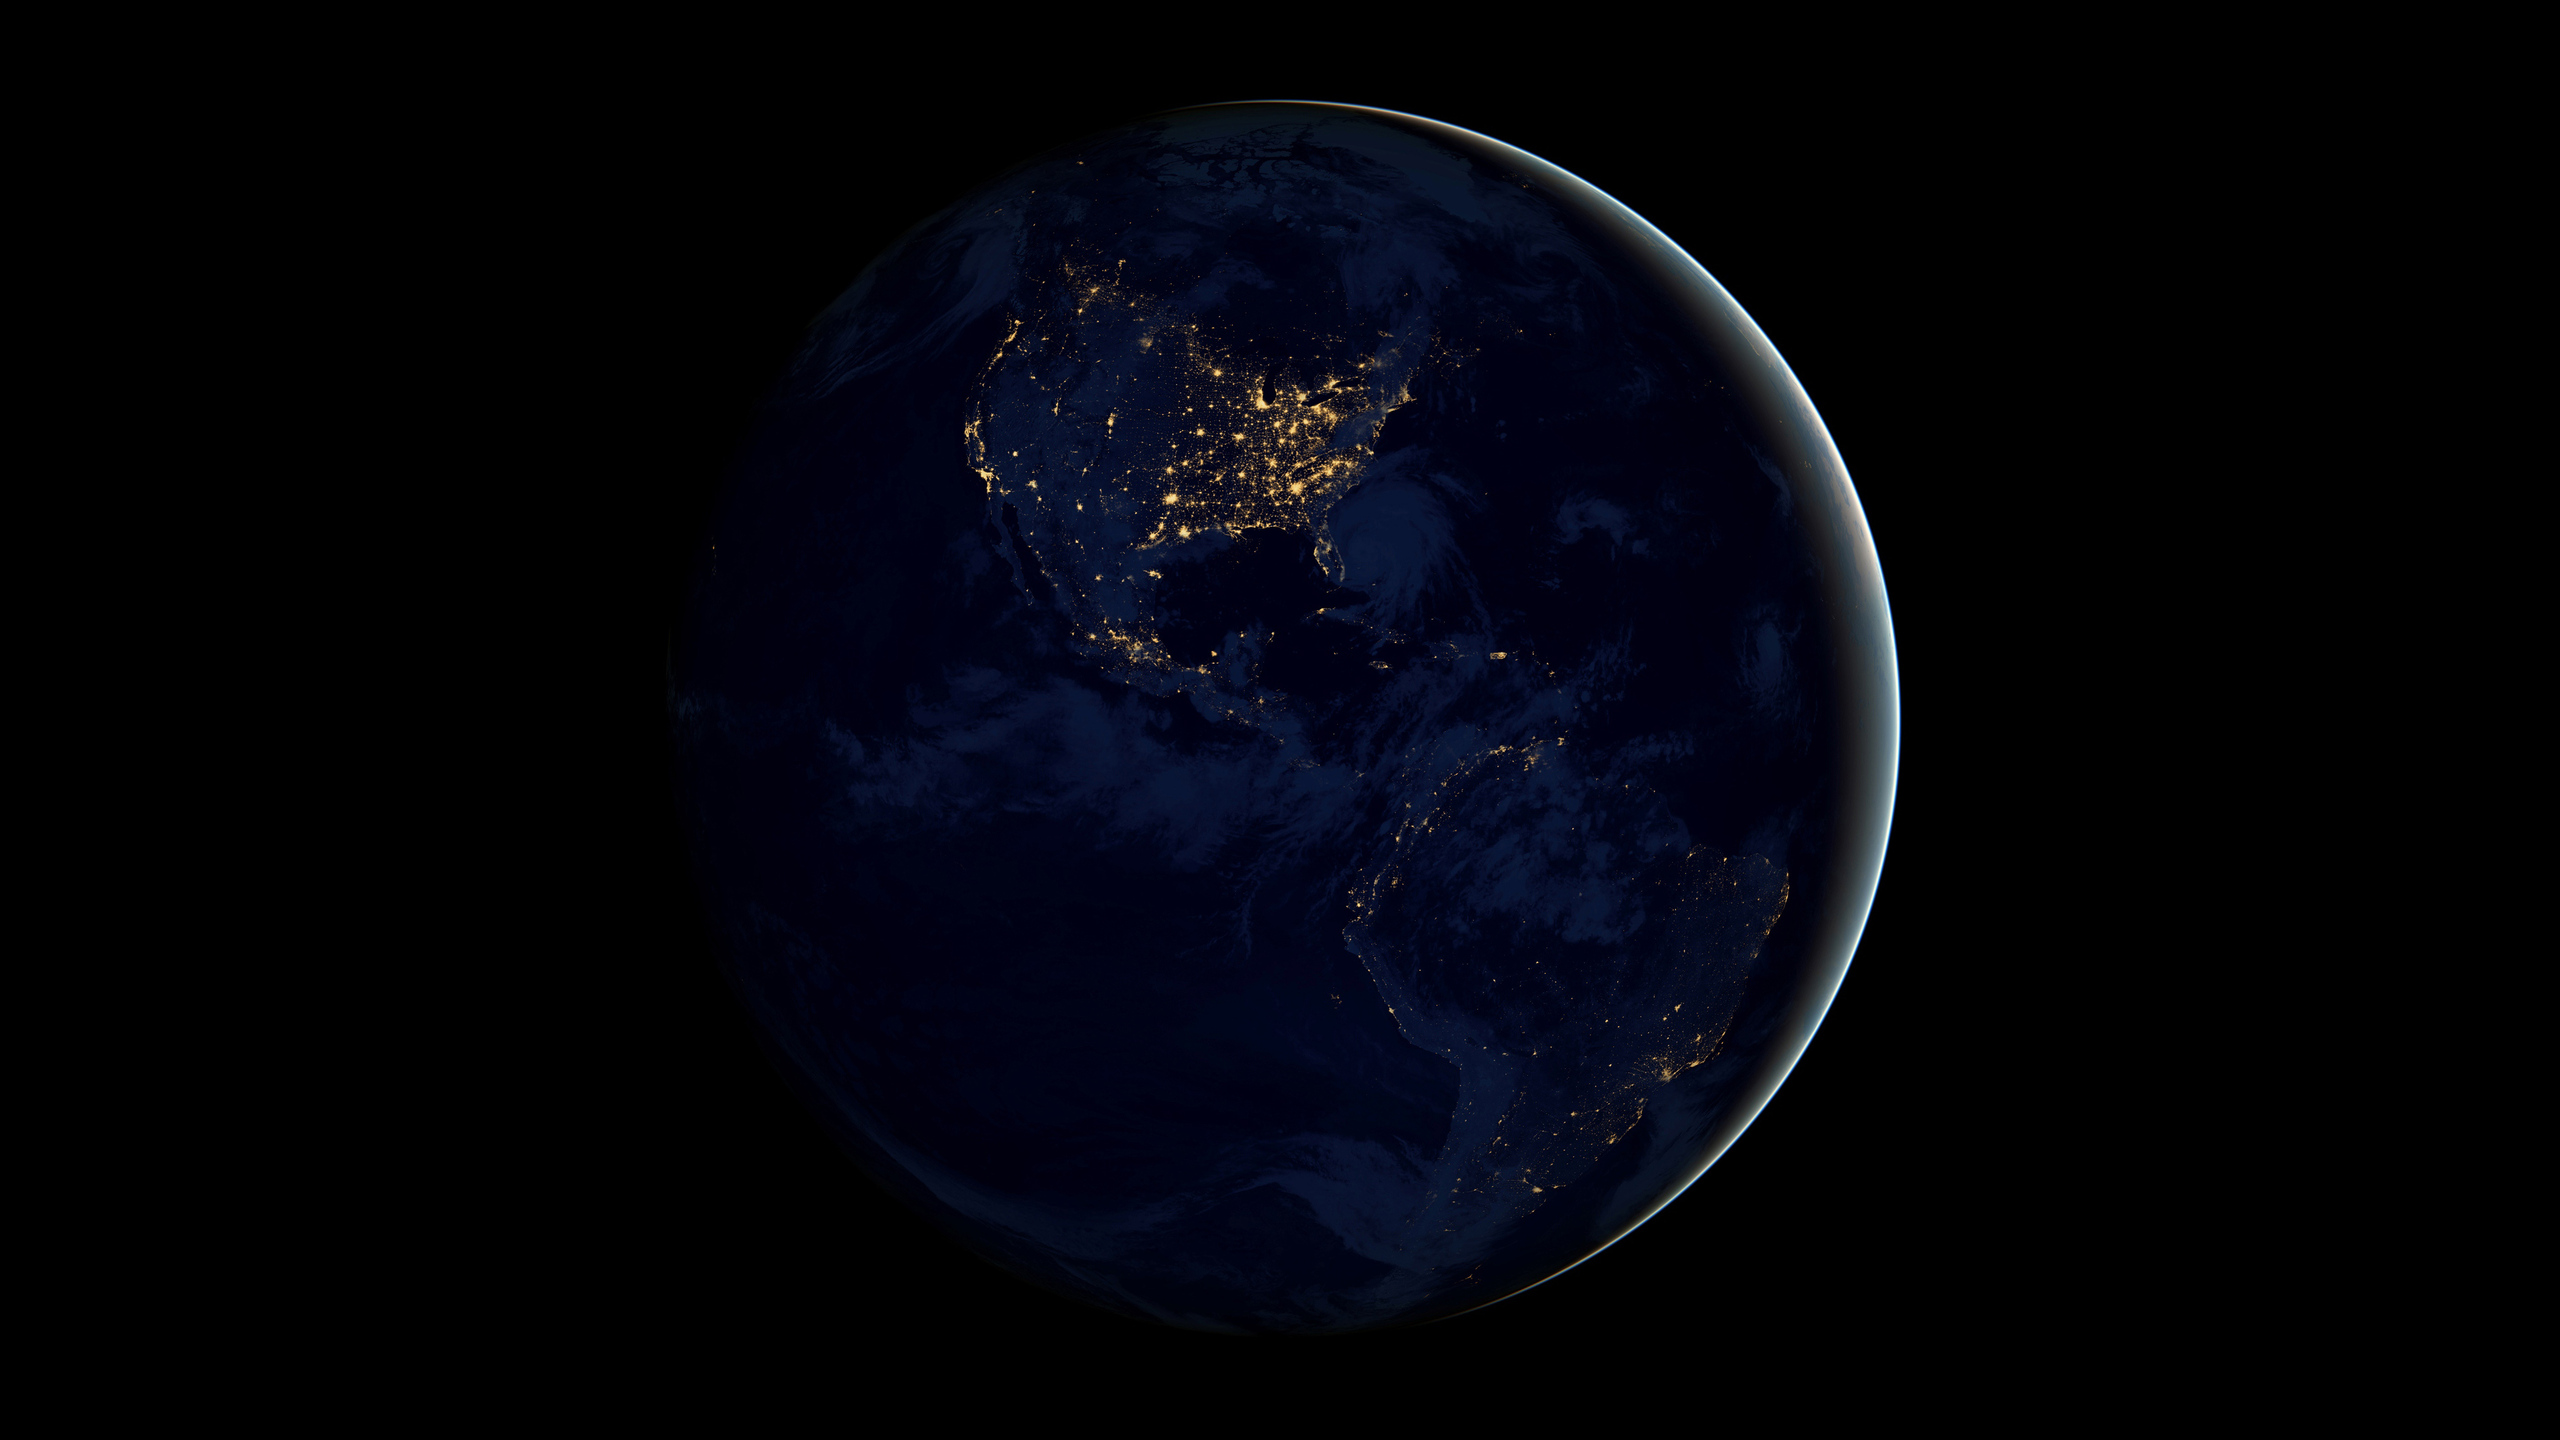 2560x1440 Earth From Space 4k 1440p Resolution Hd 4k Wallpapers Images Backgrounds Photos And Pictures